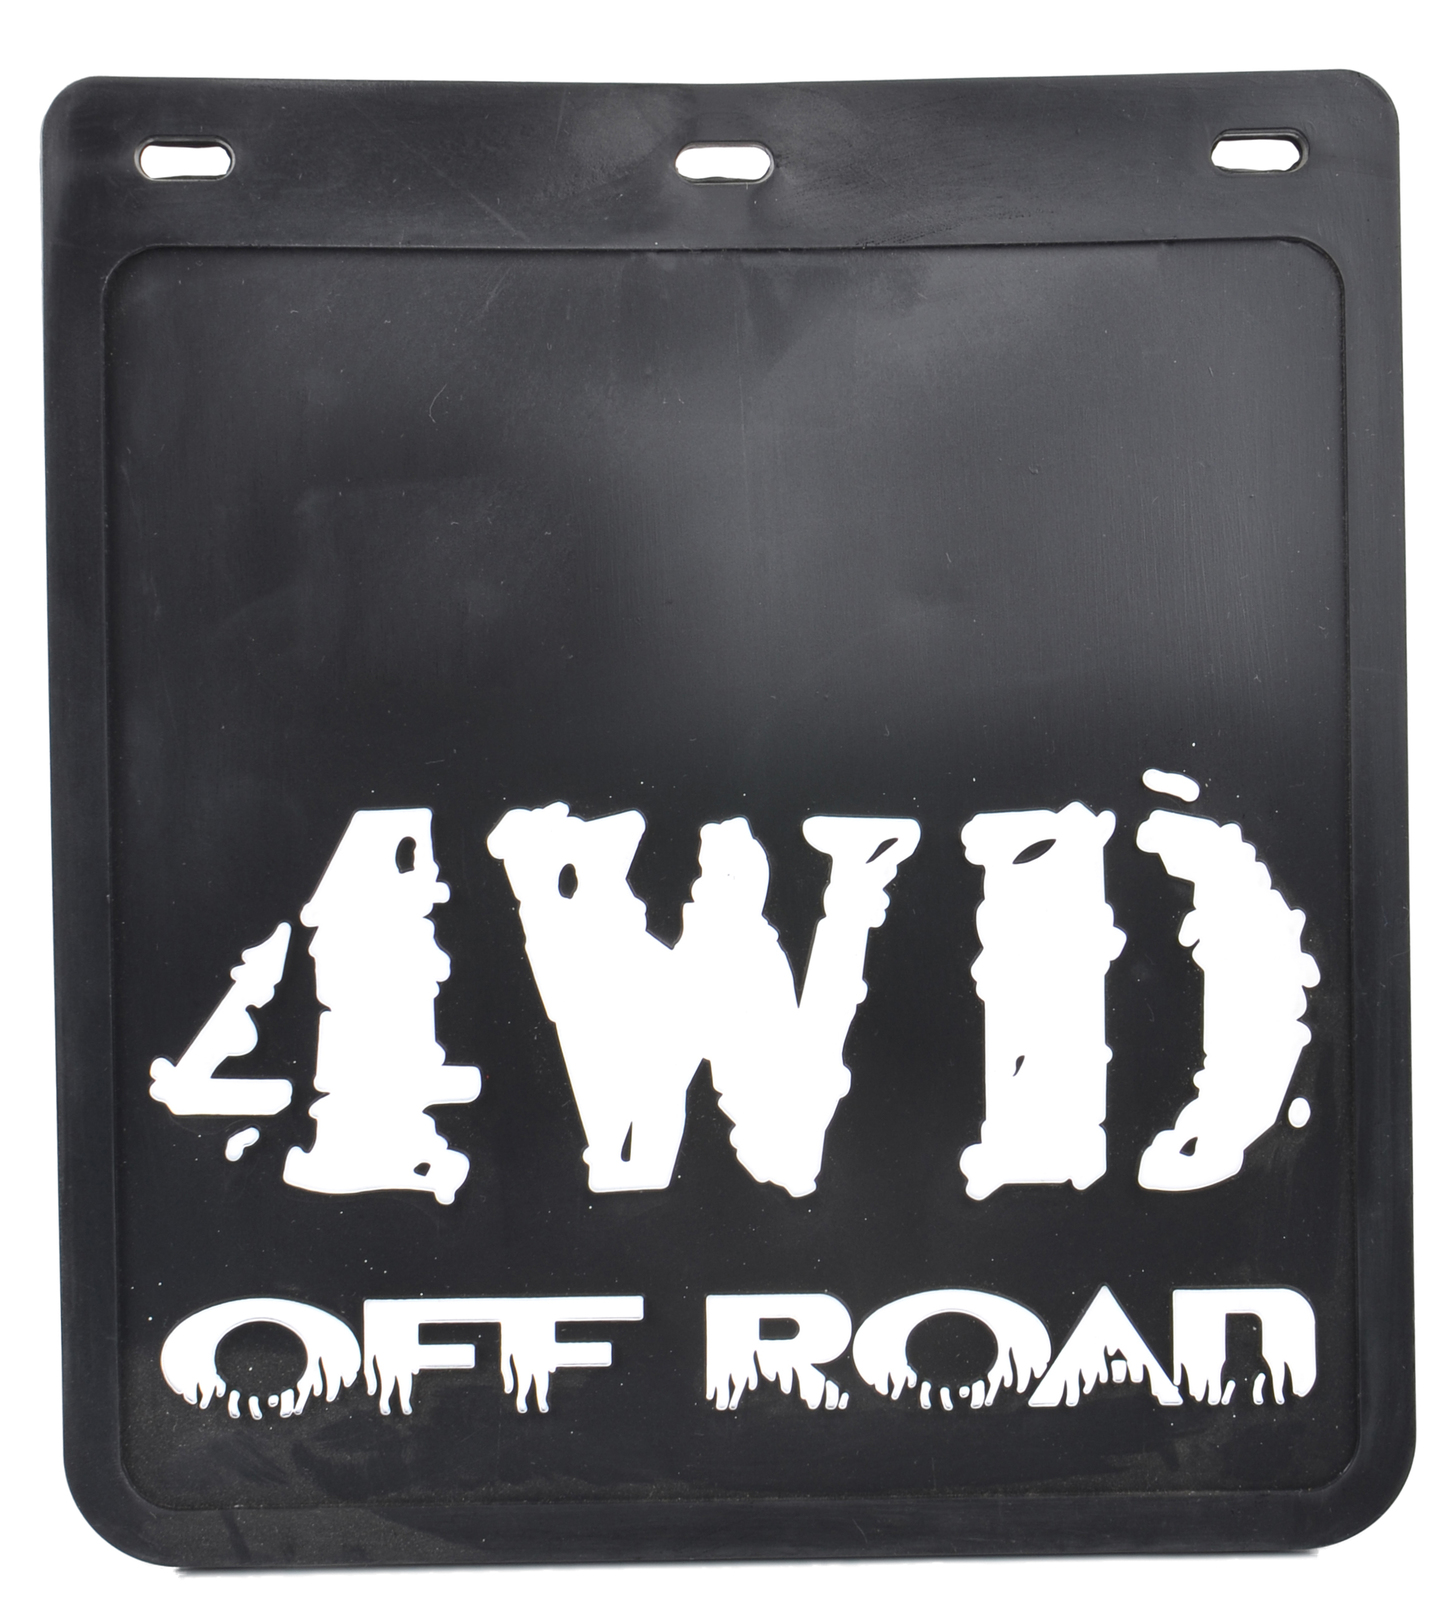 Mud Flap 4WD Off Road - 230 x 250mm DROP